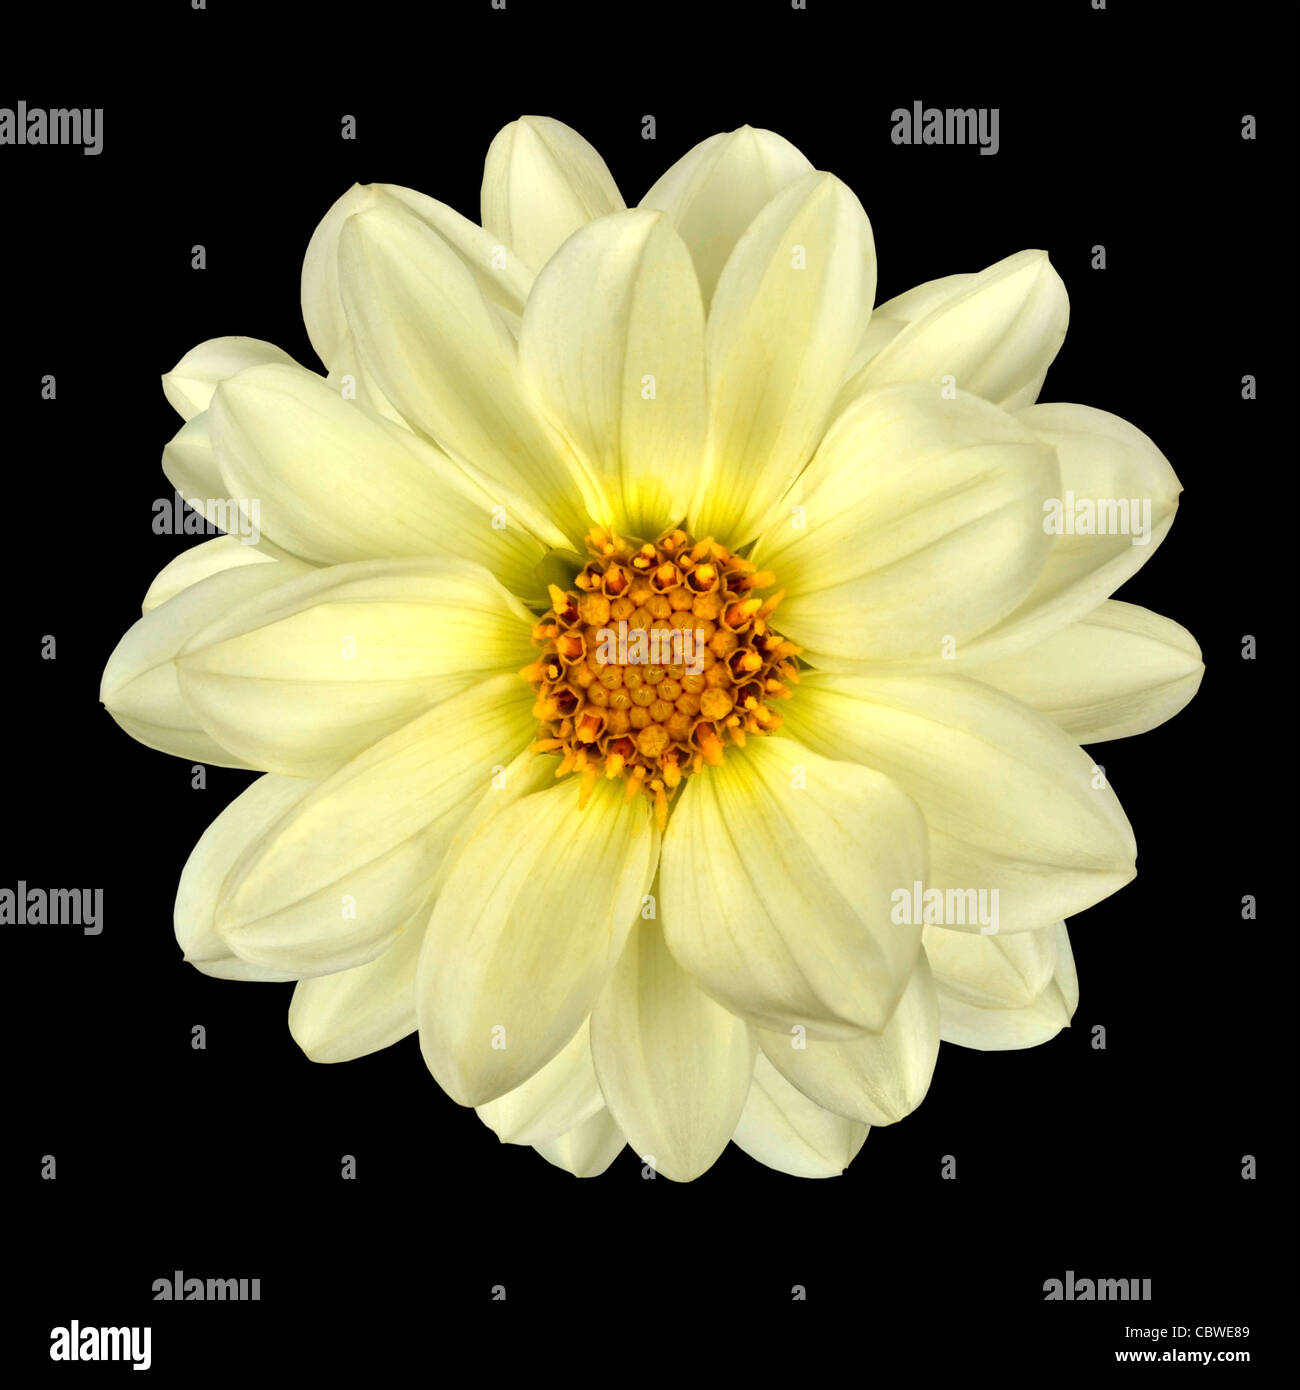 White Dahlia Flower With Yellow Center Isolated On Black Background